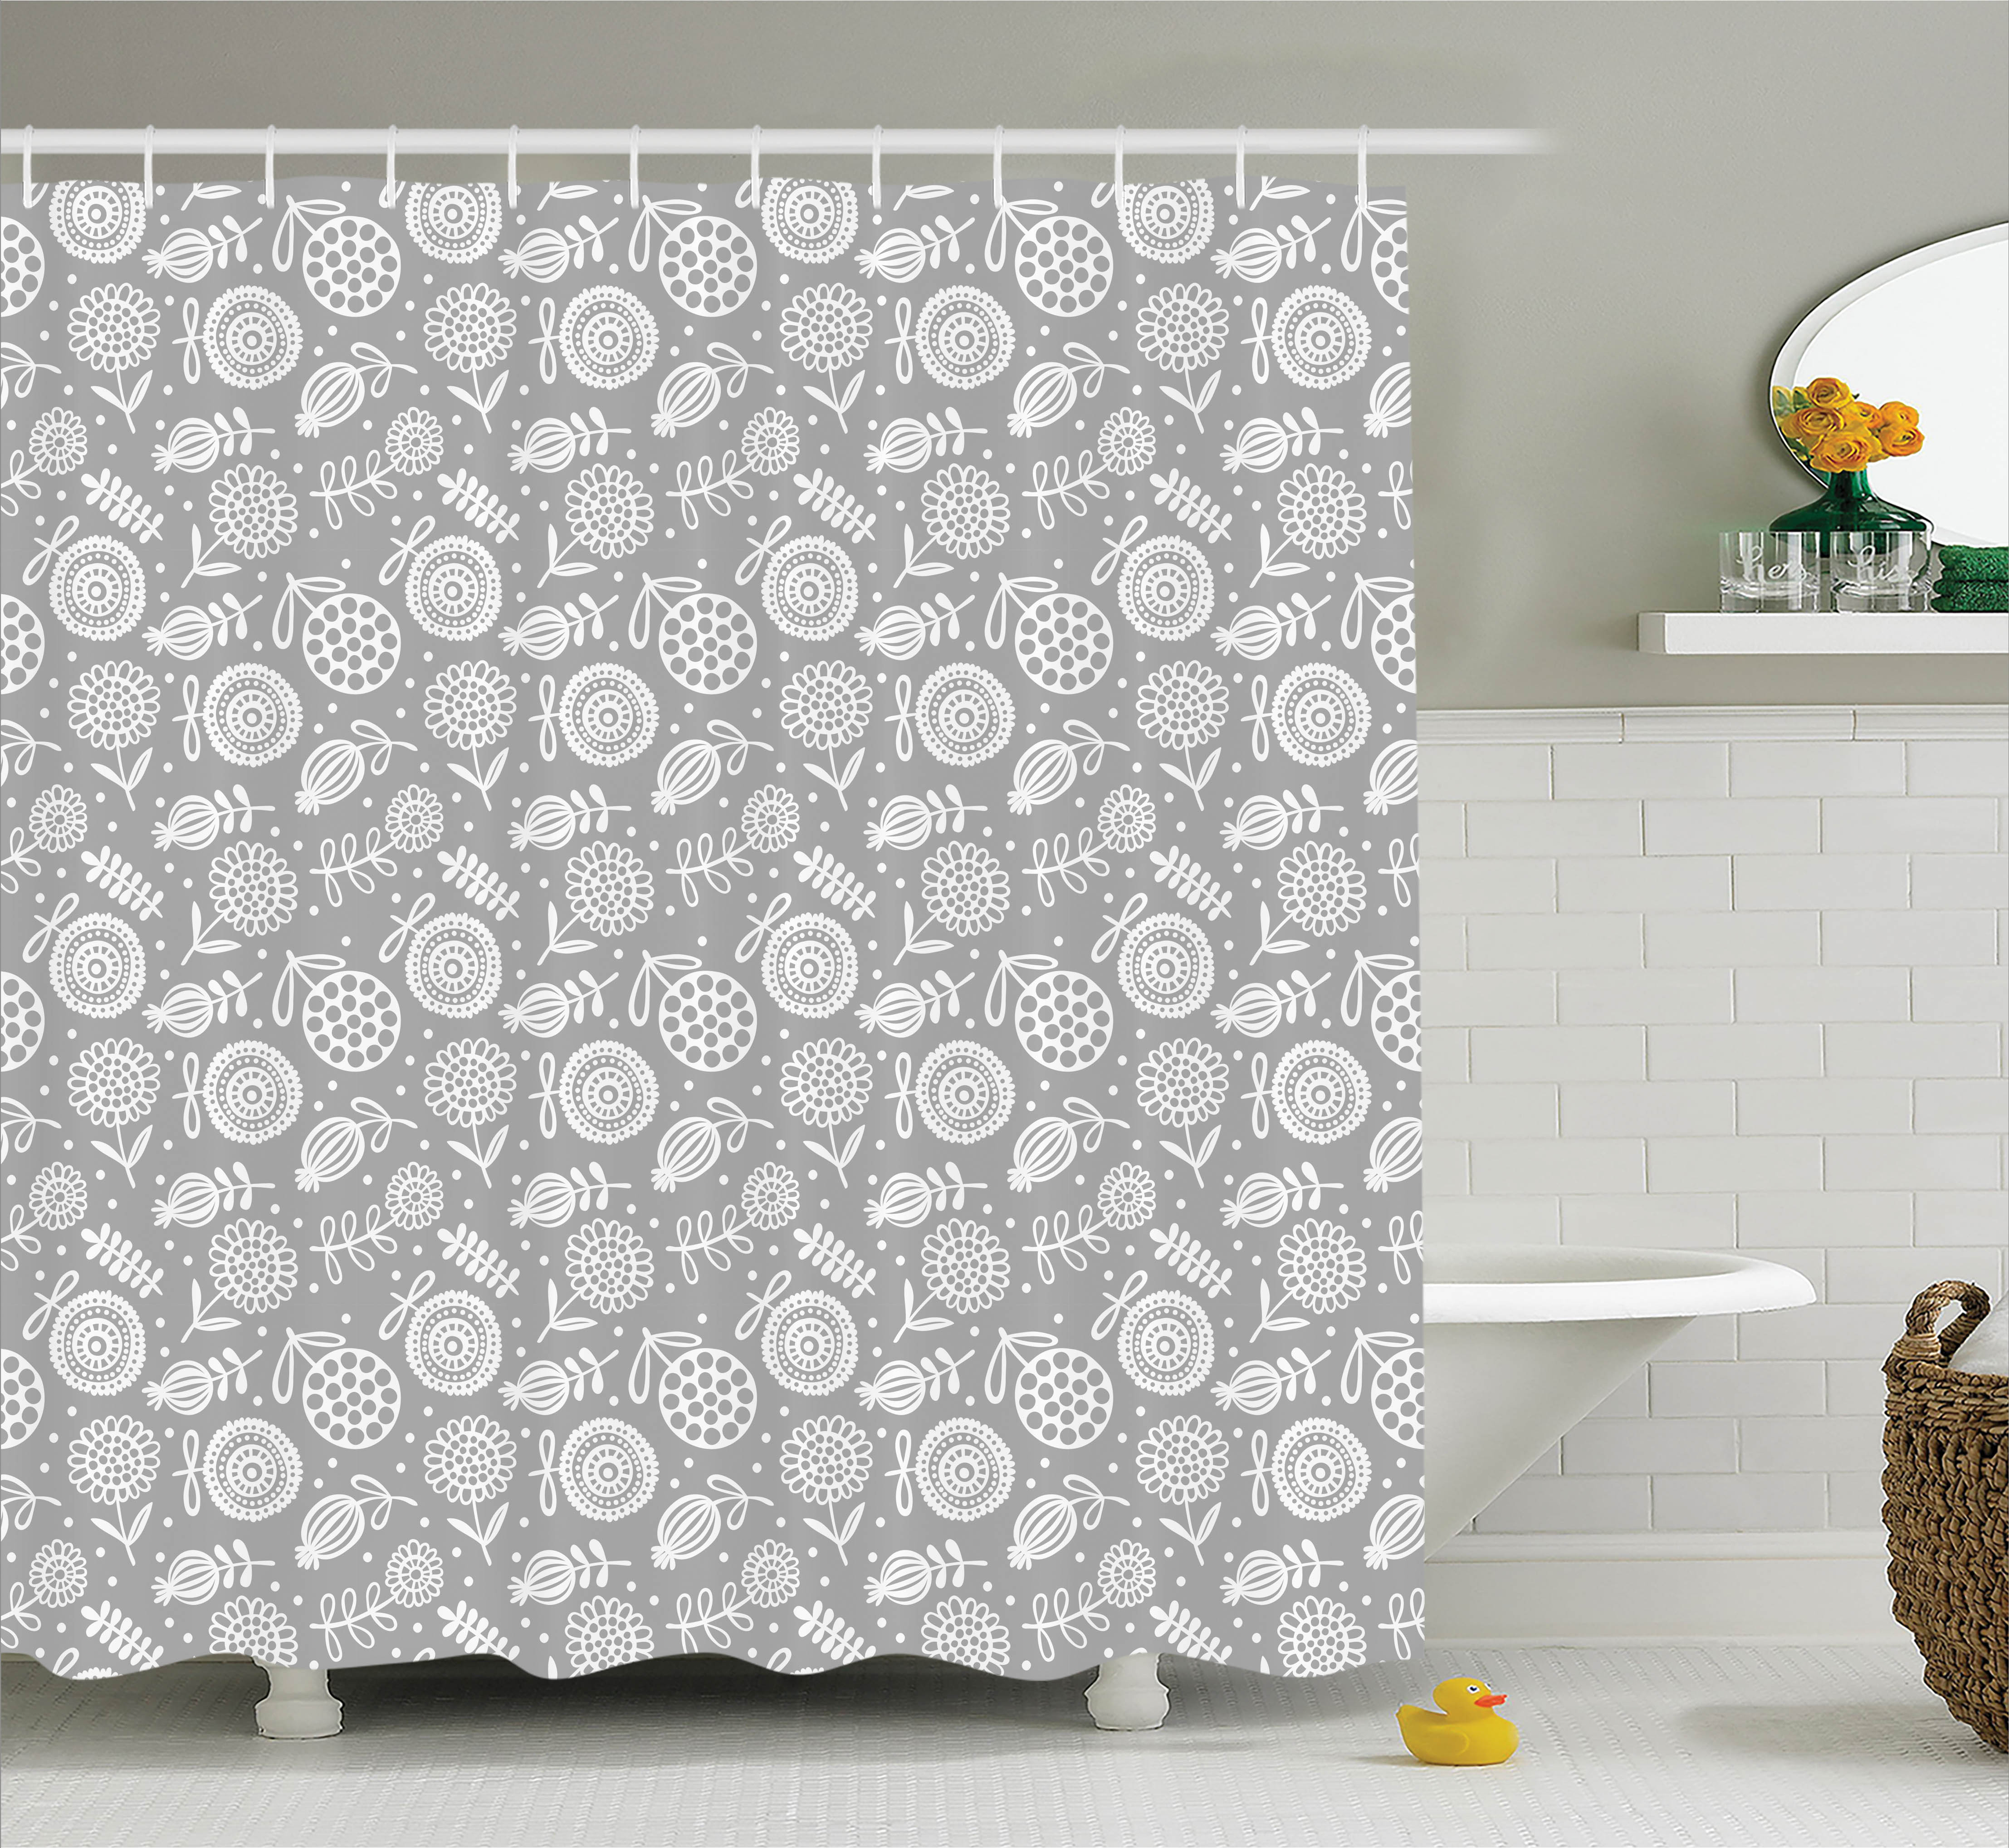 Home Decor Shower Curtain, Flower Pattern Cartoon Doodle Blooming Petal Ornament Springtime Abstract Art, Fabric Bathroom Set with Hooks, 69W X 75L Inches Long, Grey White, by Ambesonne